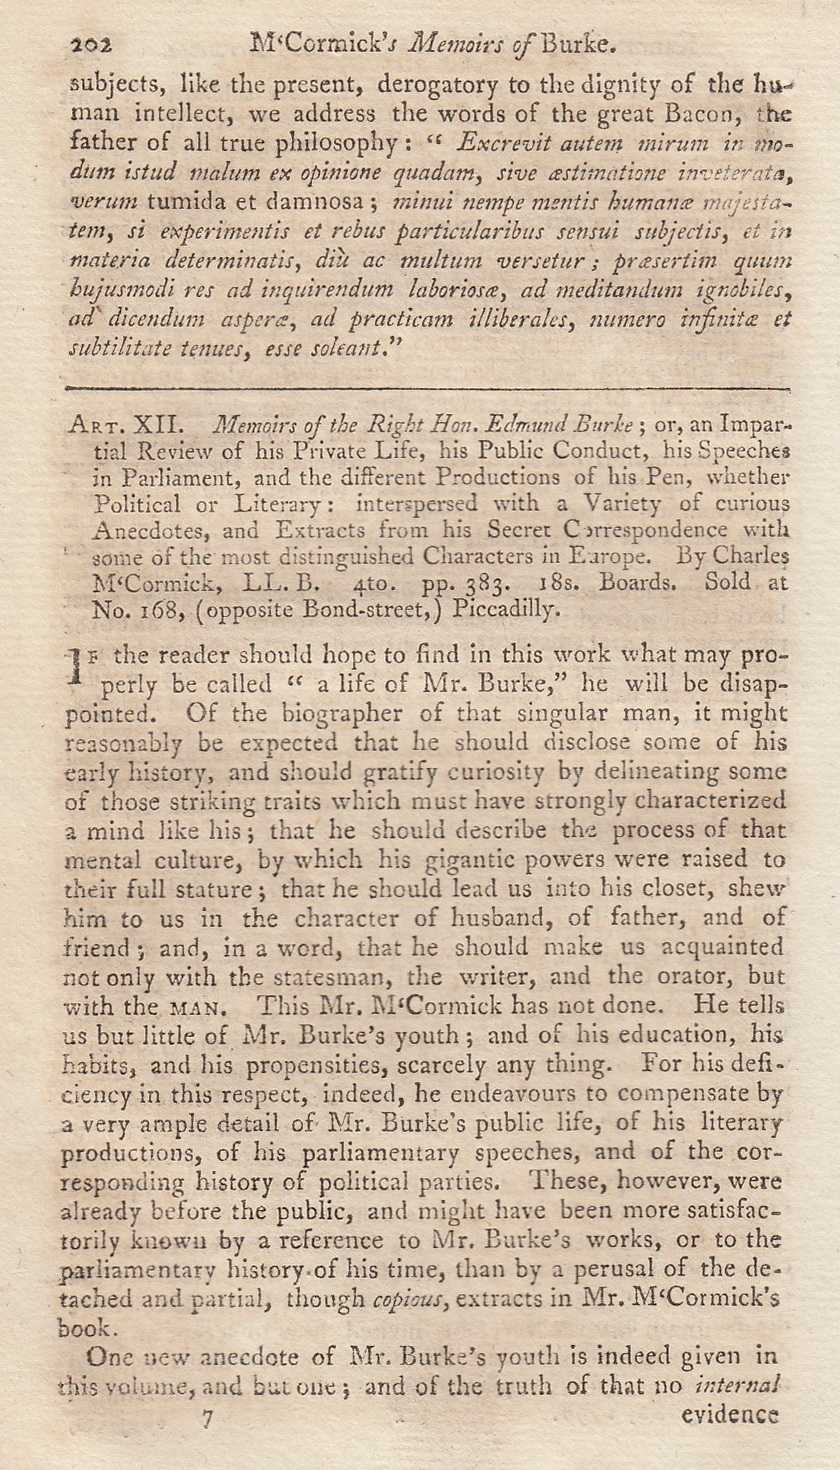 WALLACE, THOMAS - Memoirs of The Right Hon. Edmund Burke; or, an Impartial Review of his Private Life, his Public Conduct. by Charles McCormick. A rare original article from the Monthly Review, 1798.